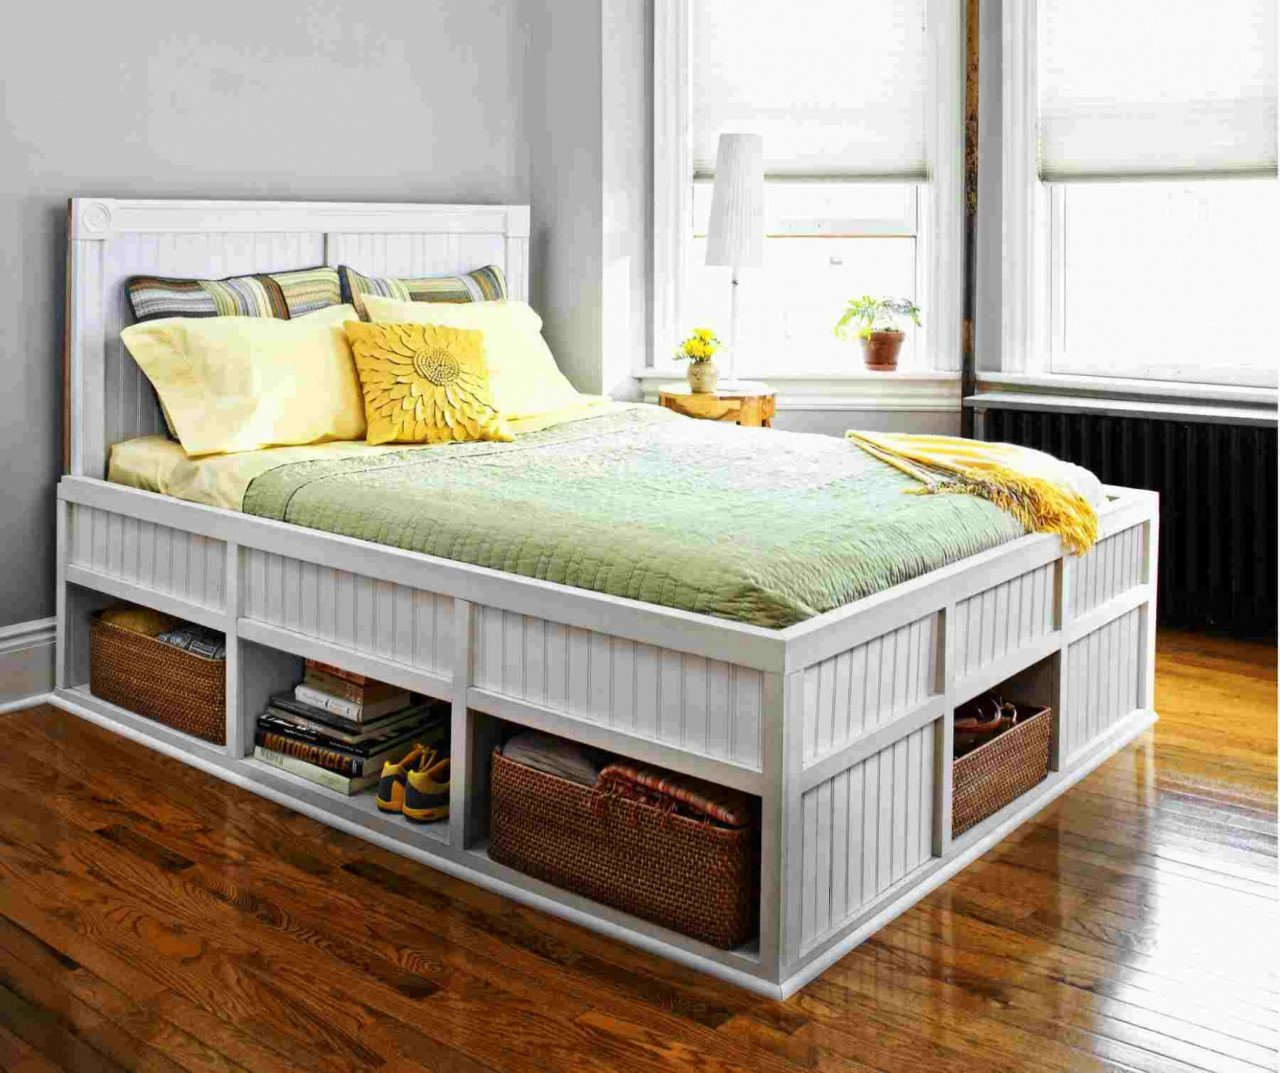 Queen Size Canopy Bedroom Set Elegant Queen Storage Bed Frame — Procura Home Blog